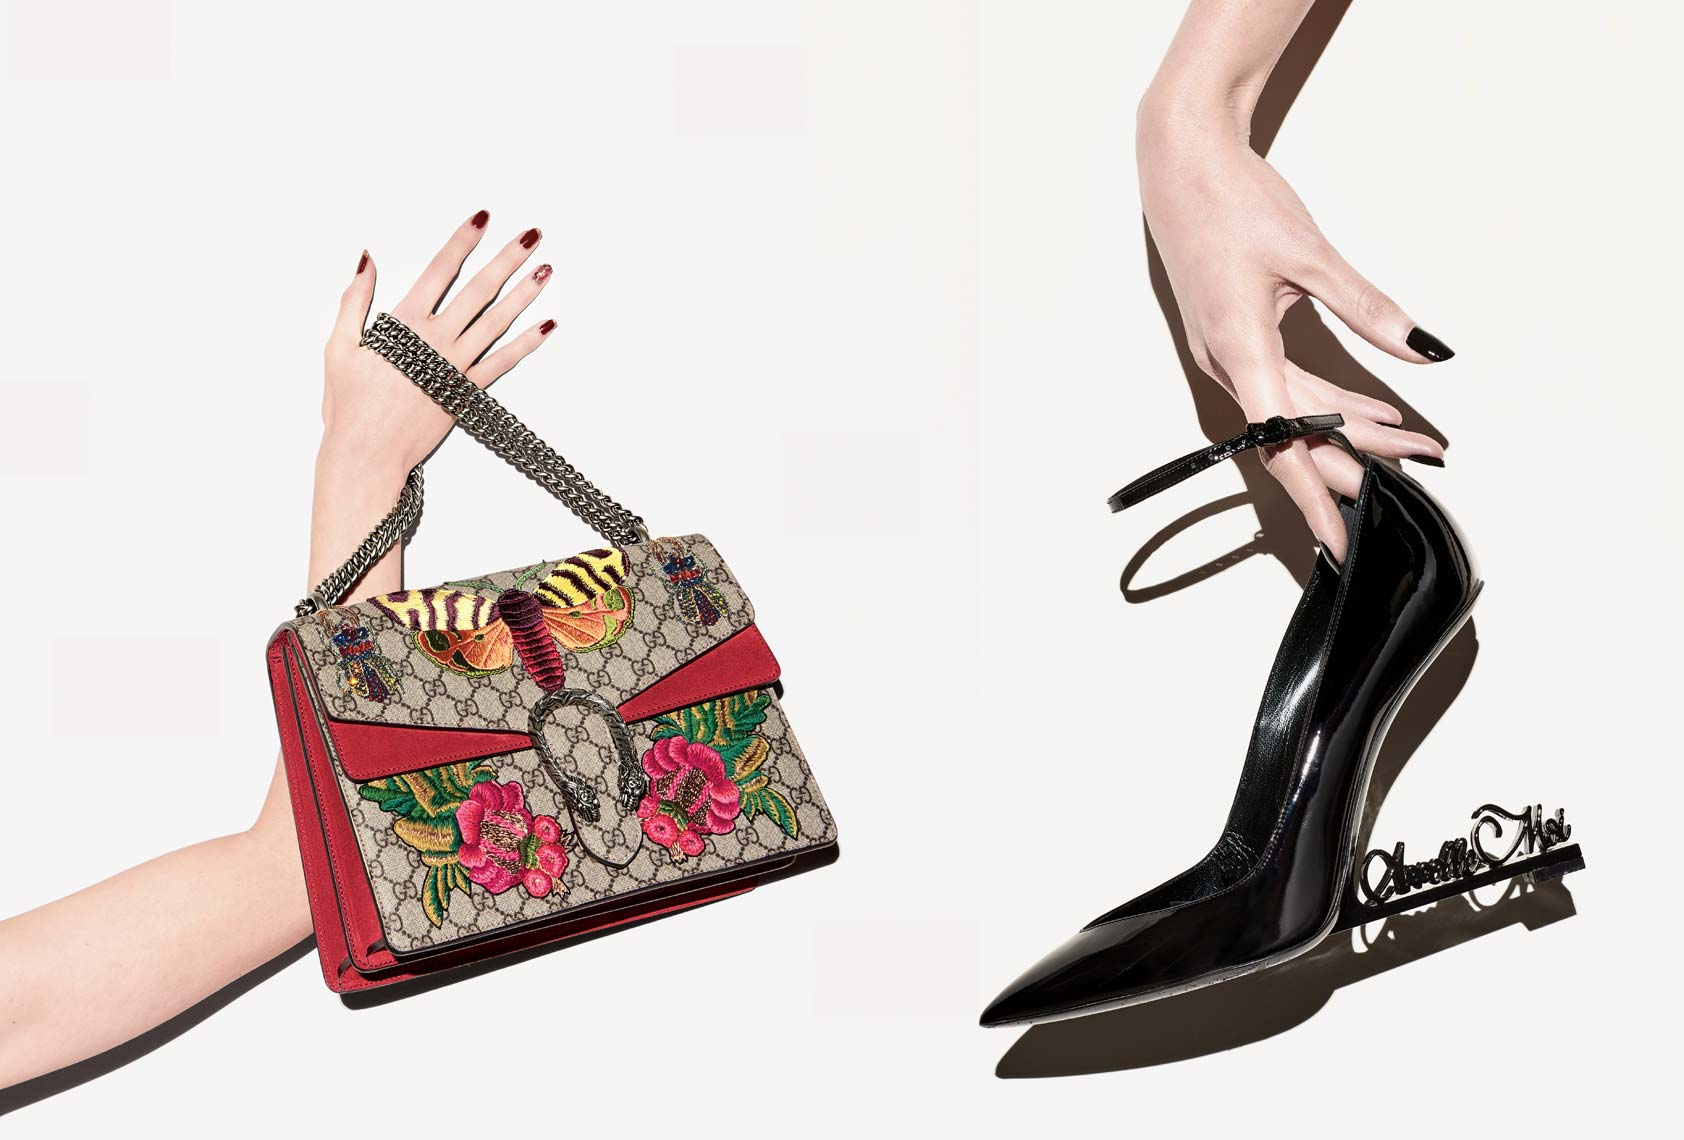 Jeff Stephens | Designer Shoes and Handbags On Figure